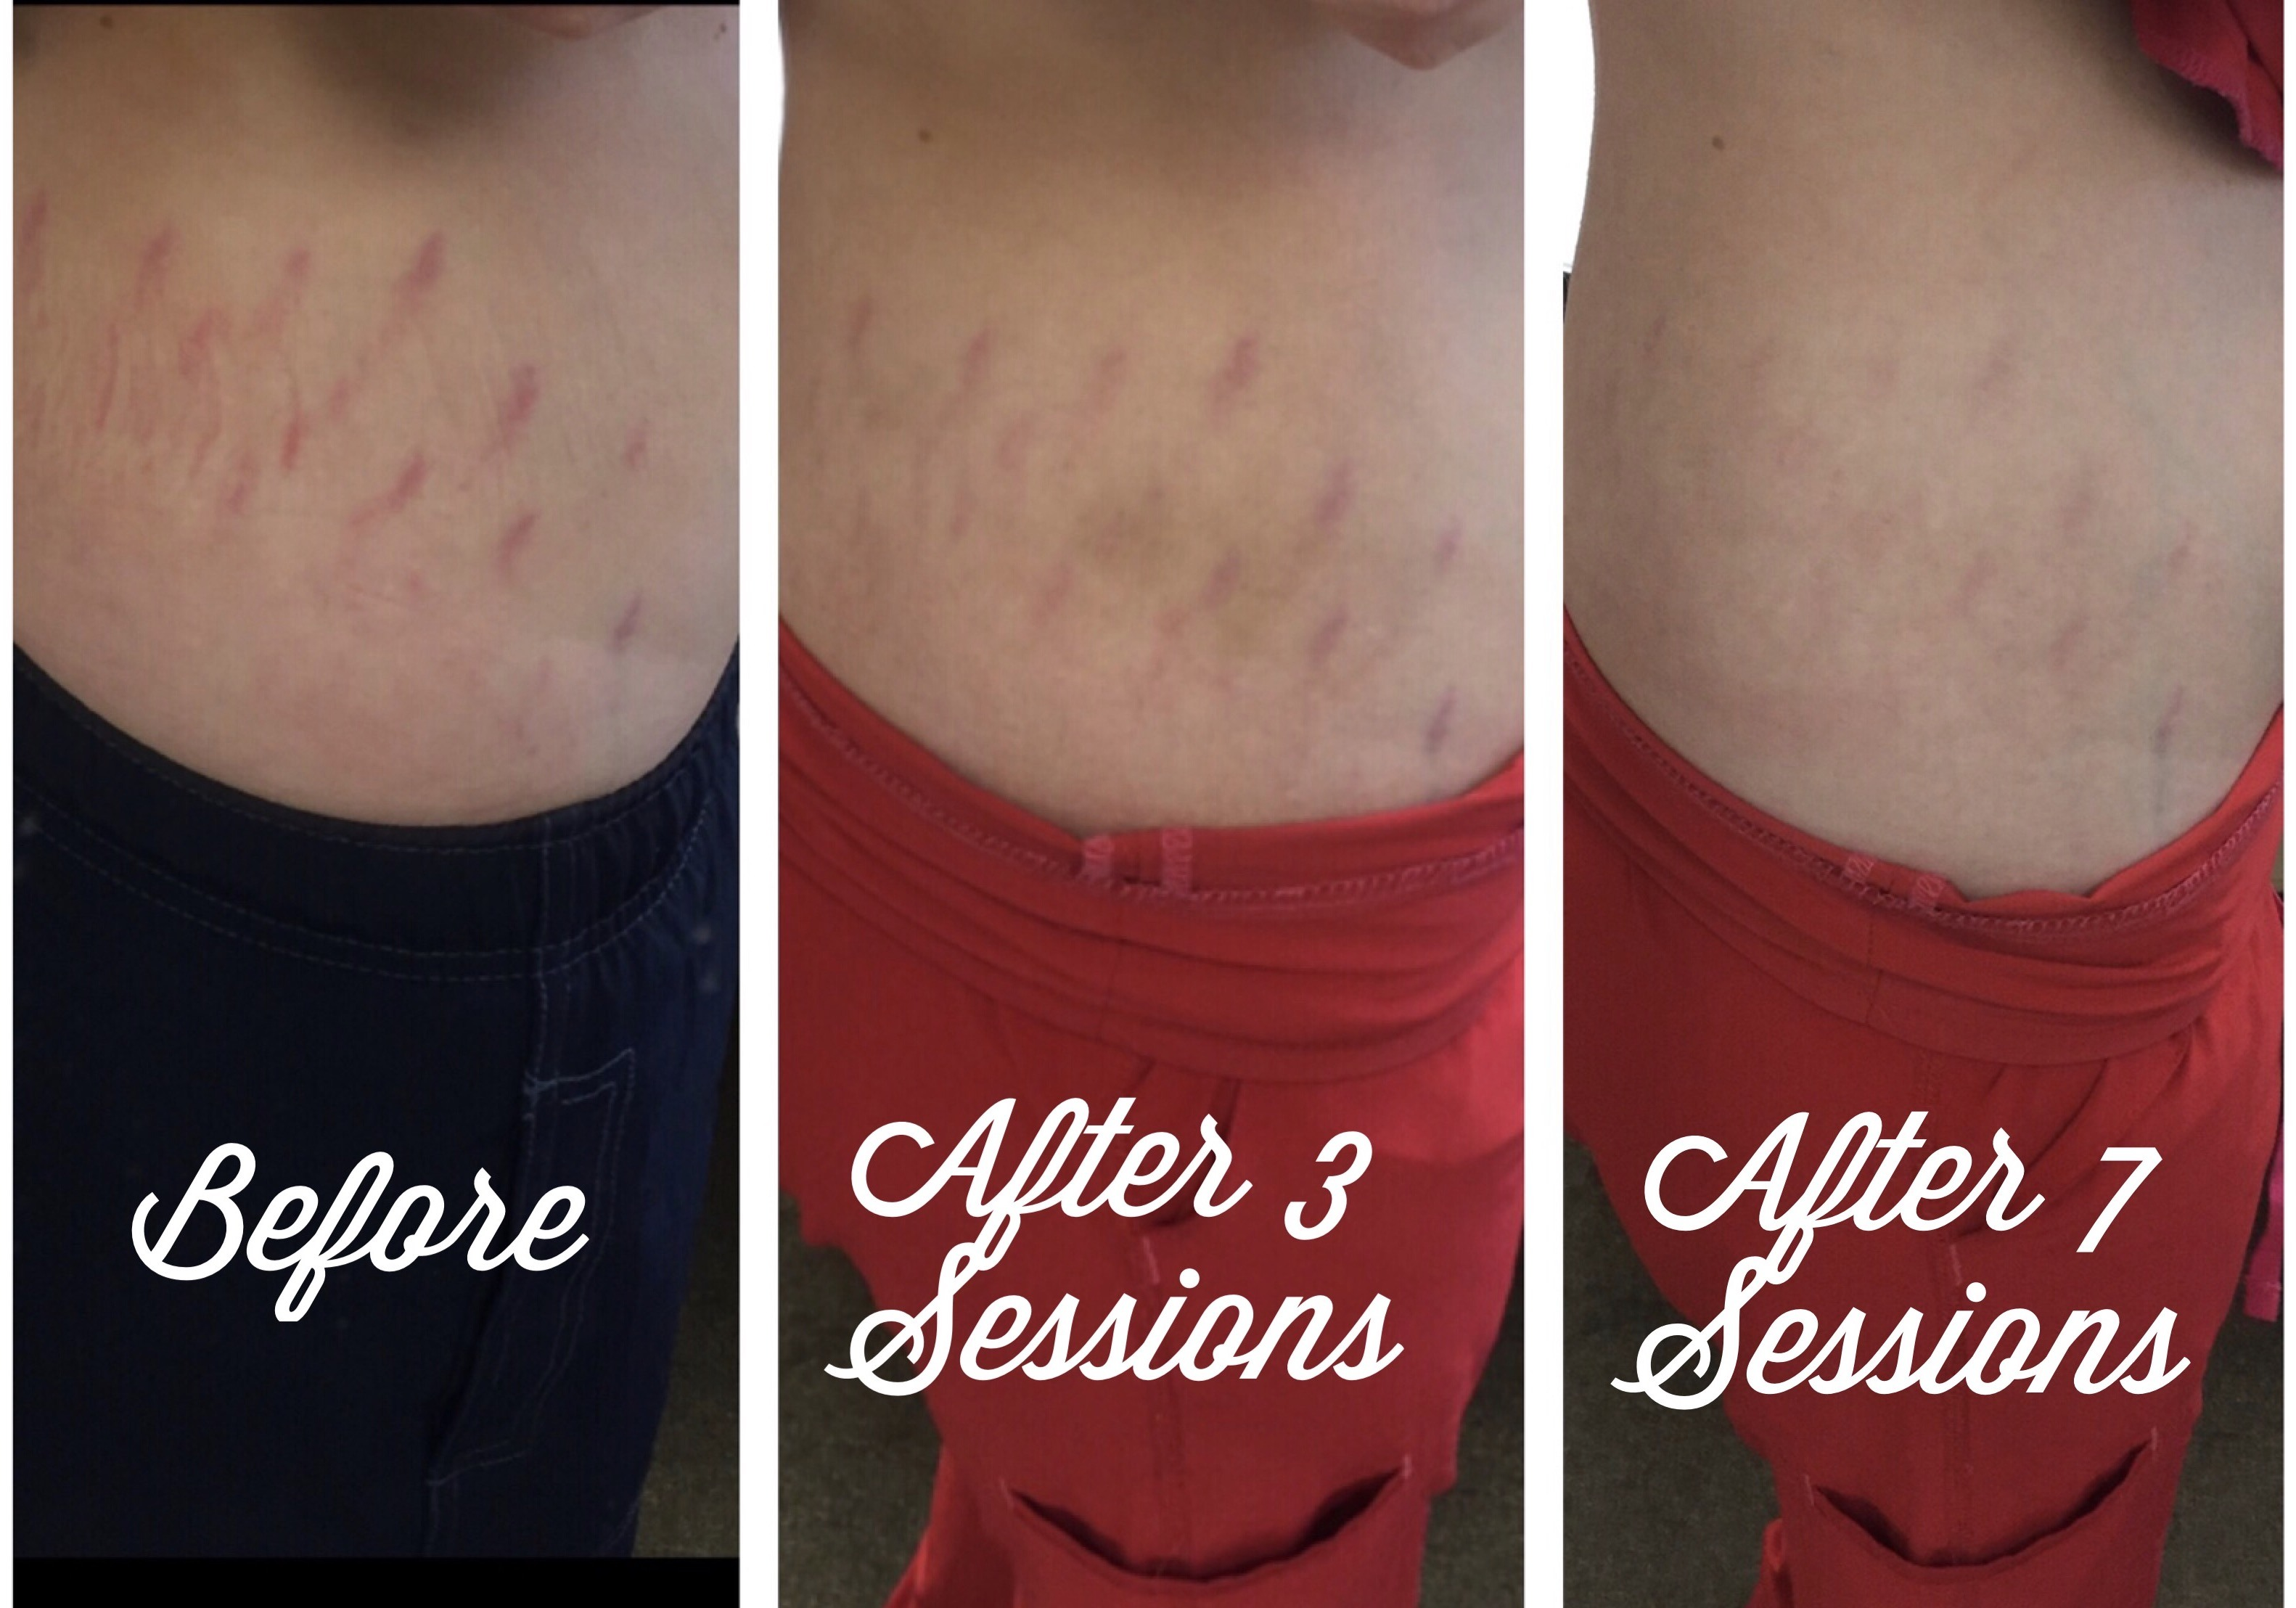 Microneedling Before and After Pictures Nashville, TN